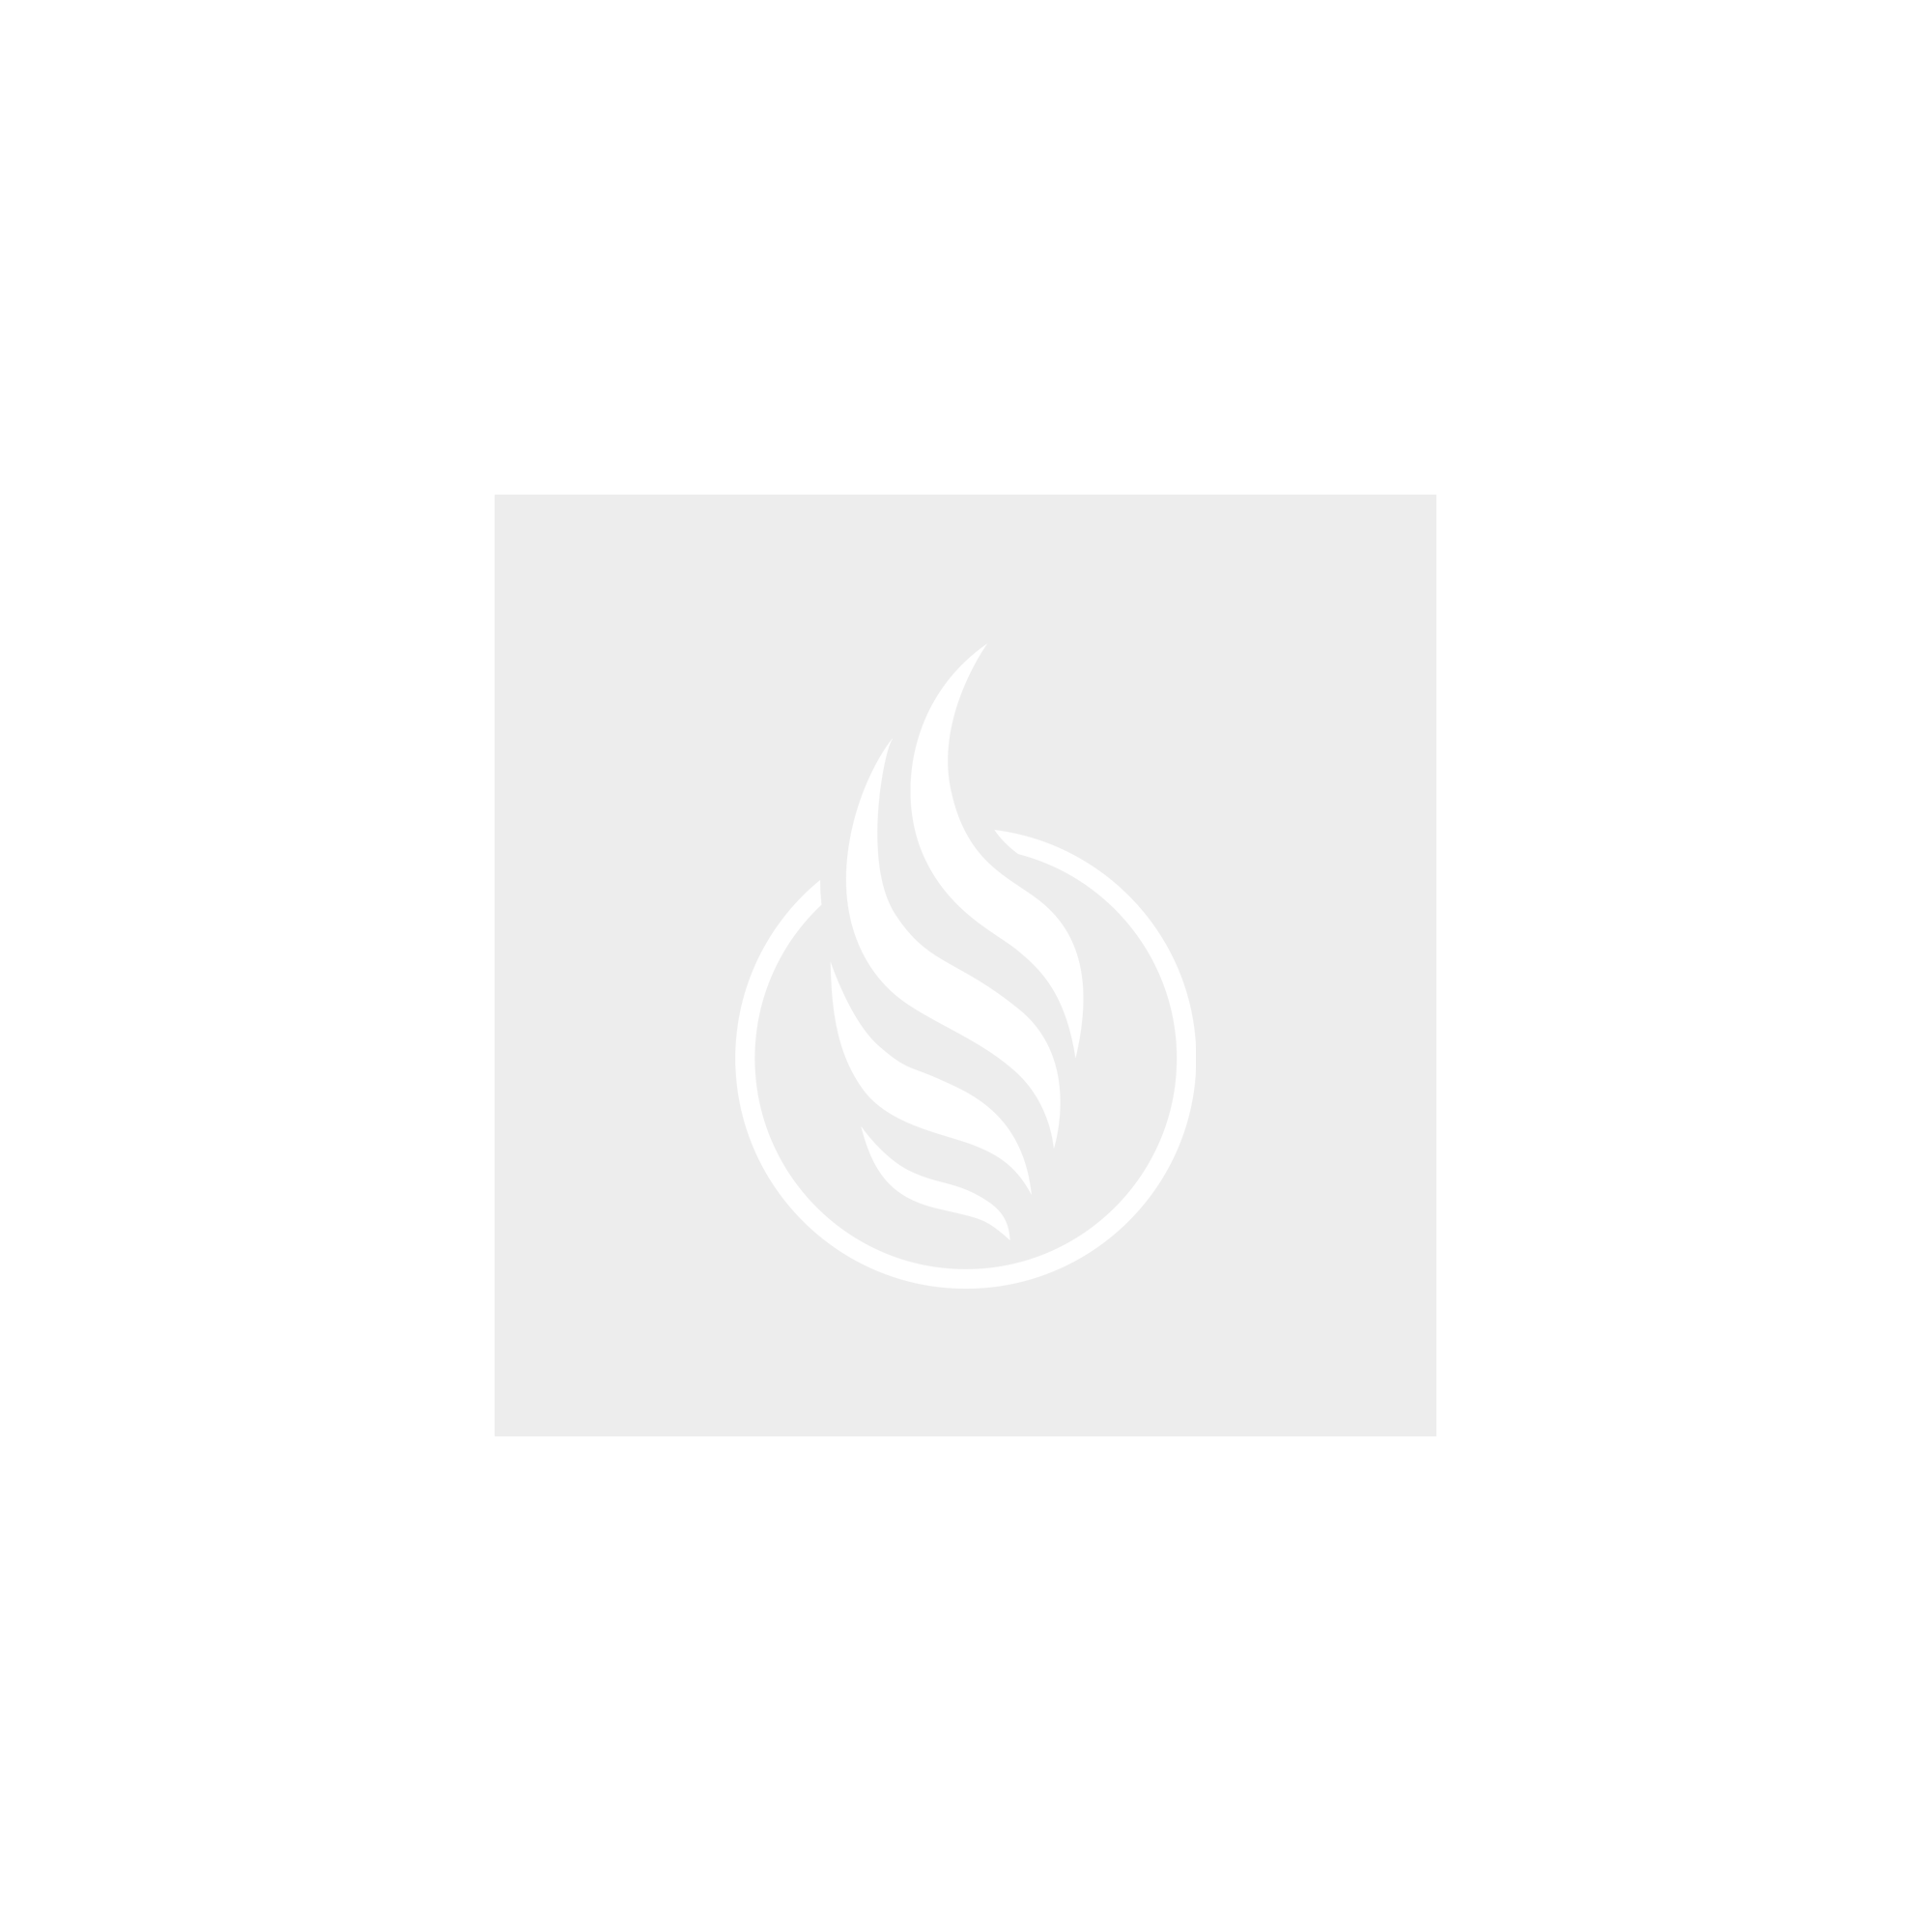 Pinkman 70/30 E-Liquid 10ml